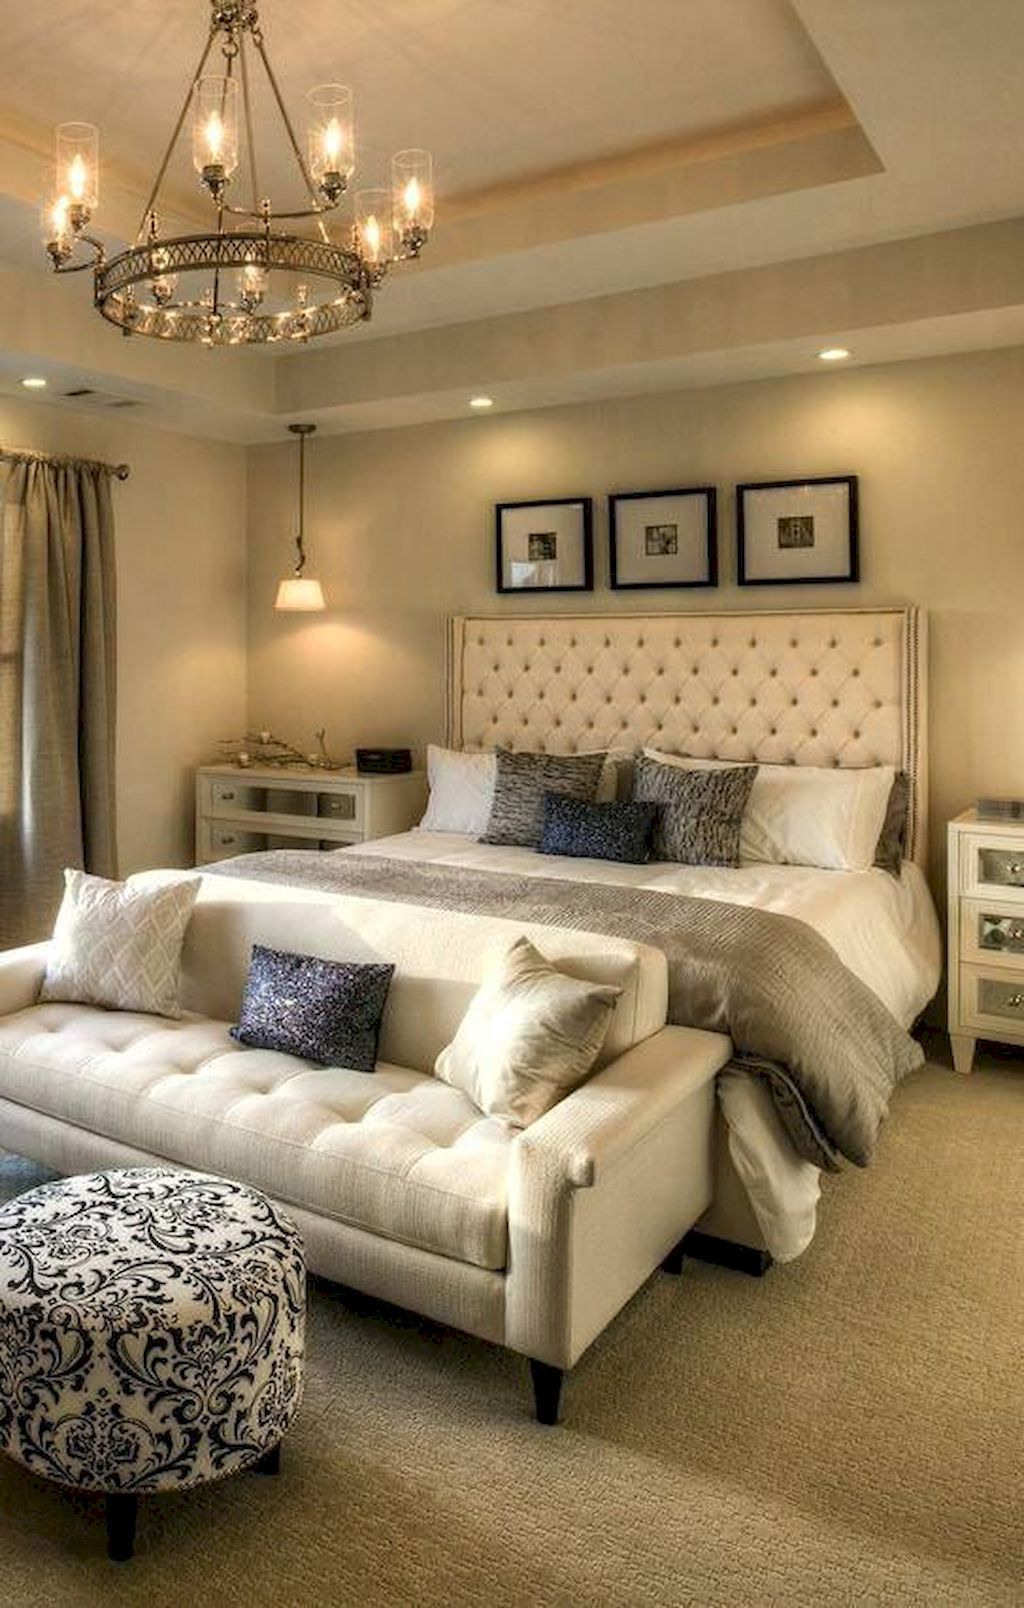 Normous  Awesome Fresh Master Bedroom Ideas For Your Home images